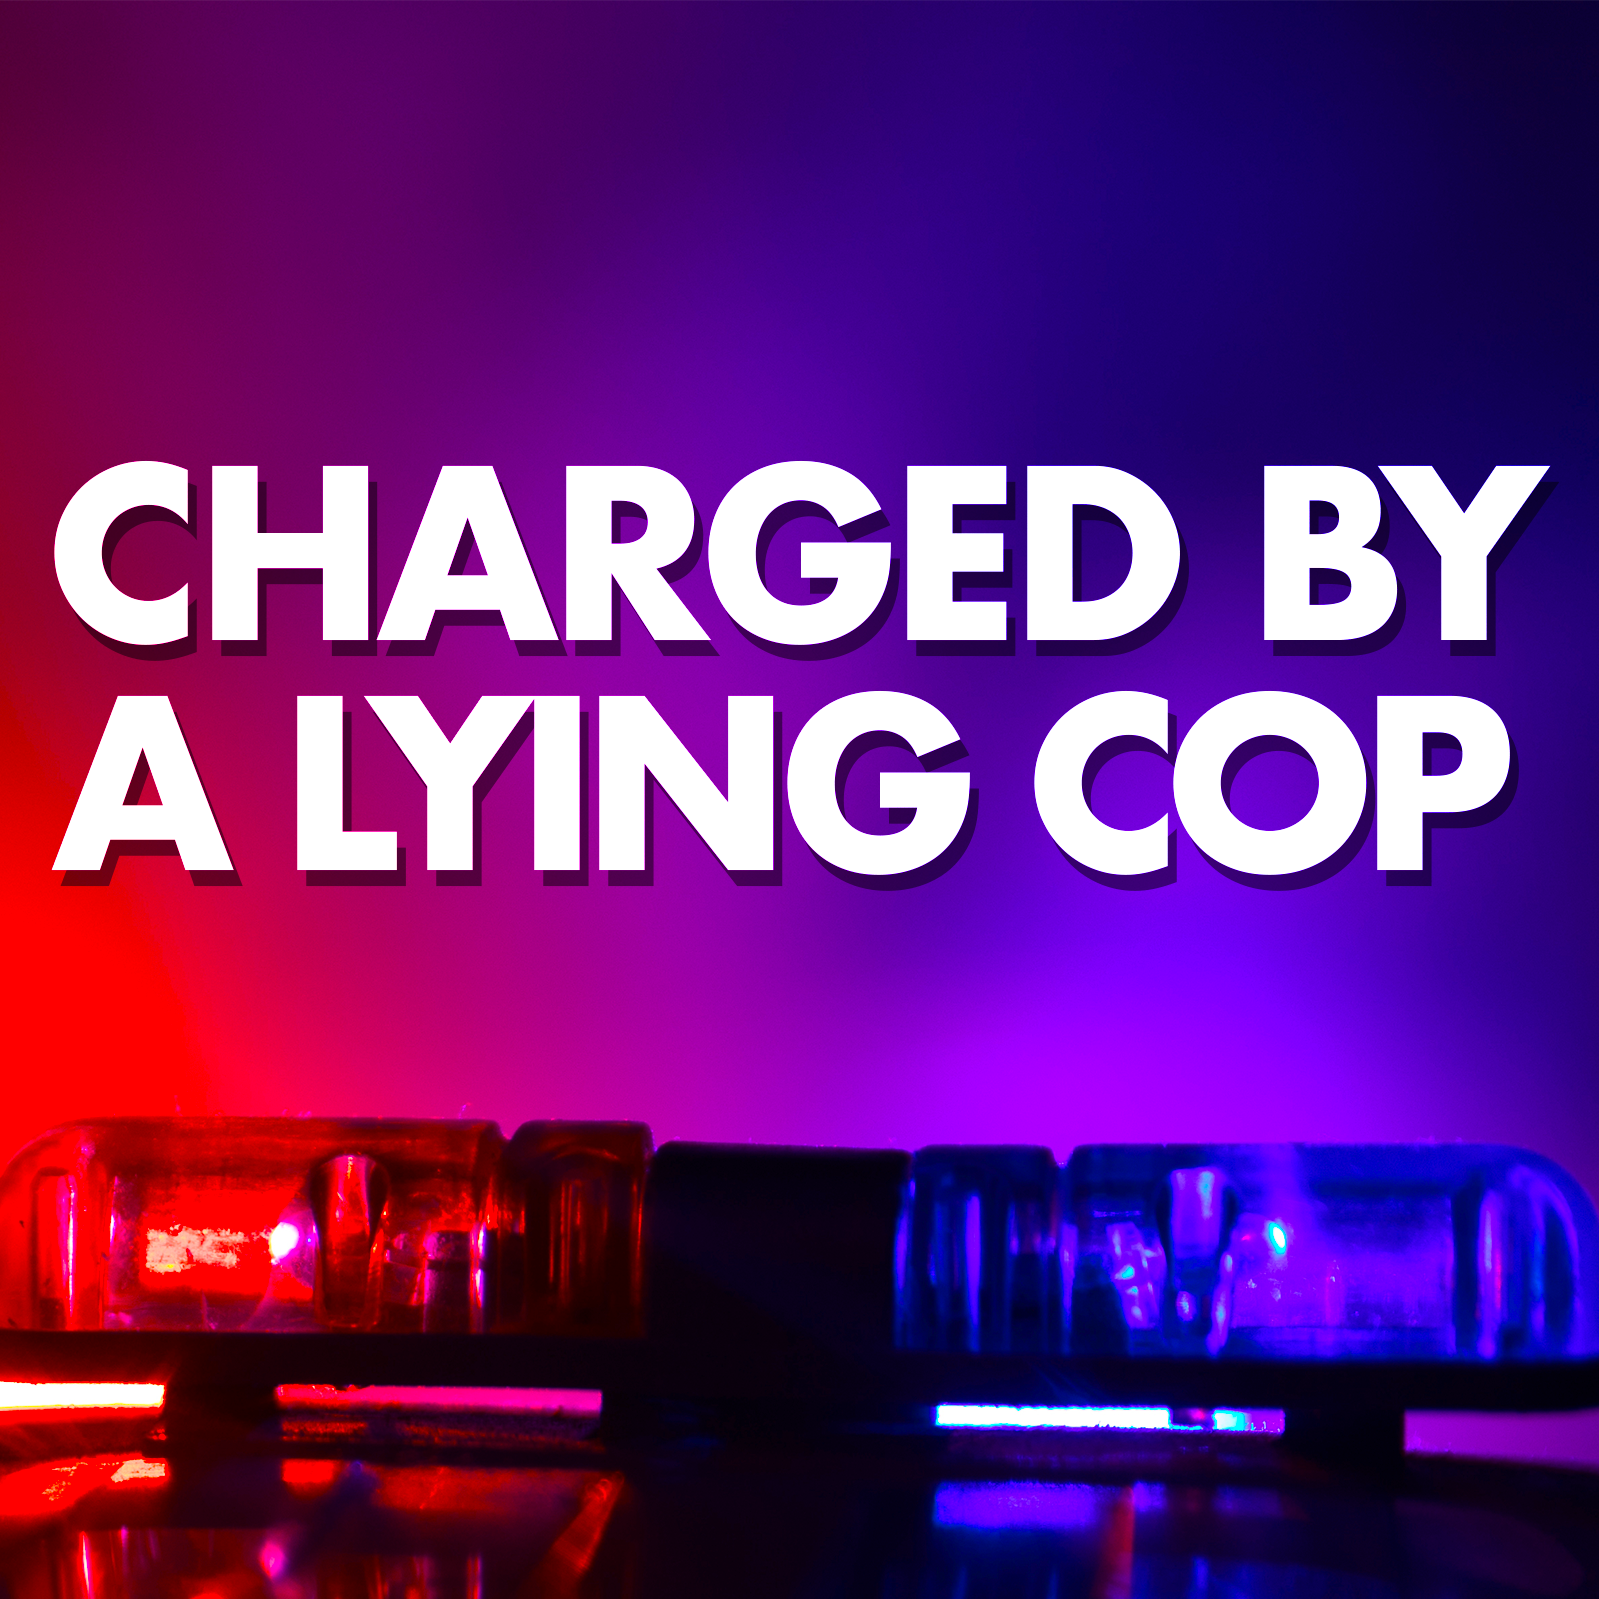 NJ police misconduct: A lying cop ruined a man's life. It could happen to you.